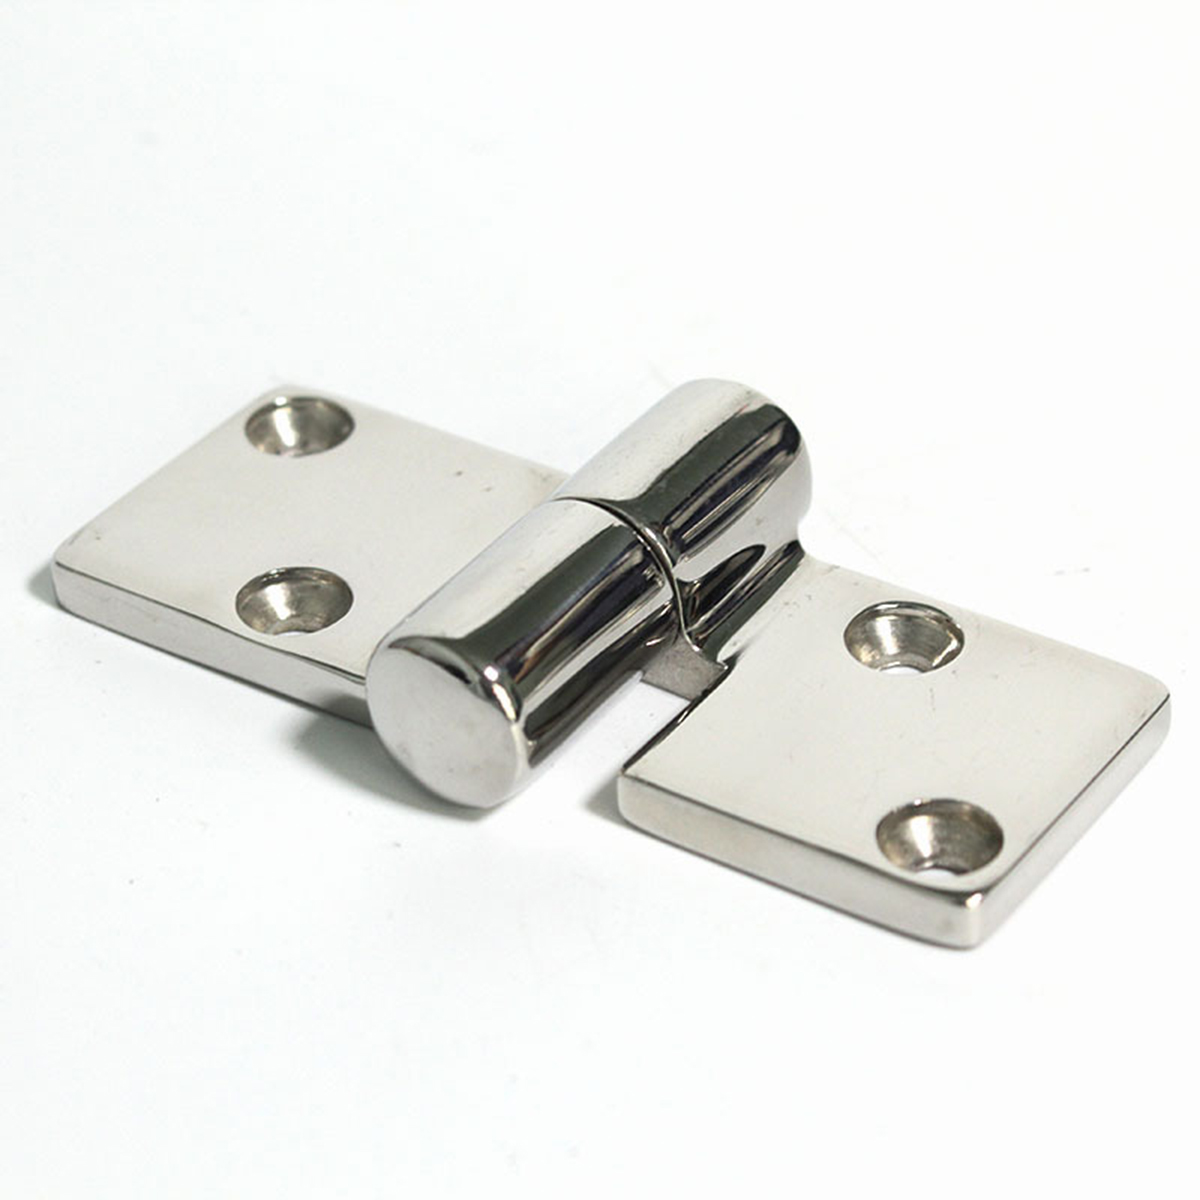 2pcs 316 Stainless Steel Boat Door Lift-off// Take-Apart Hinge Right Hand